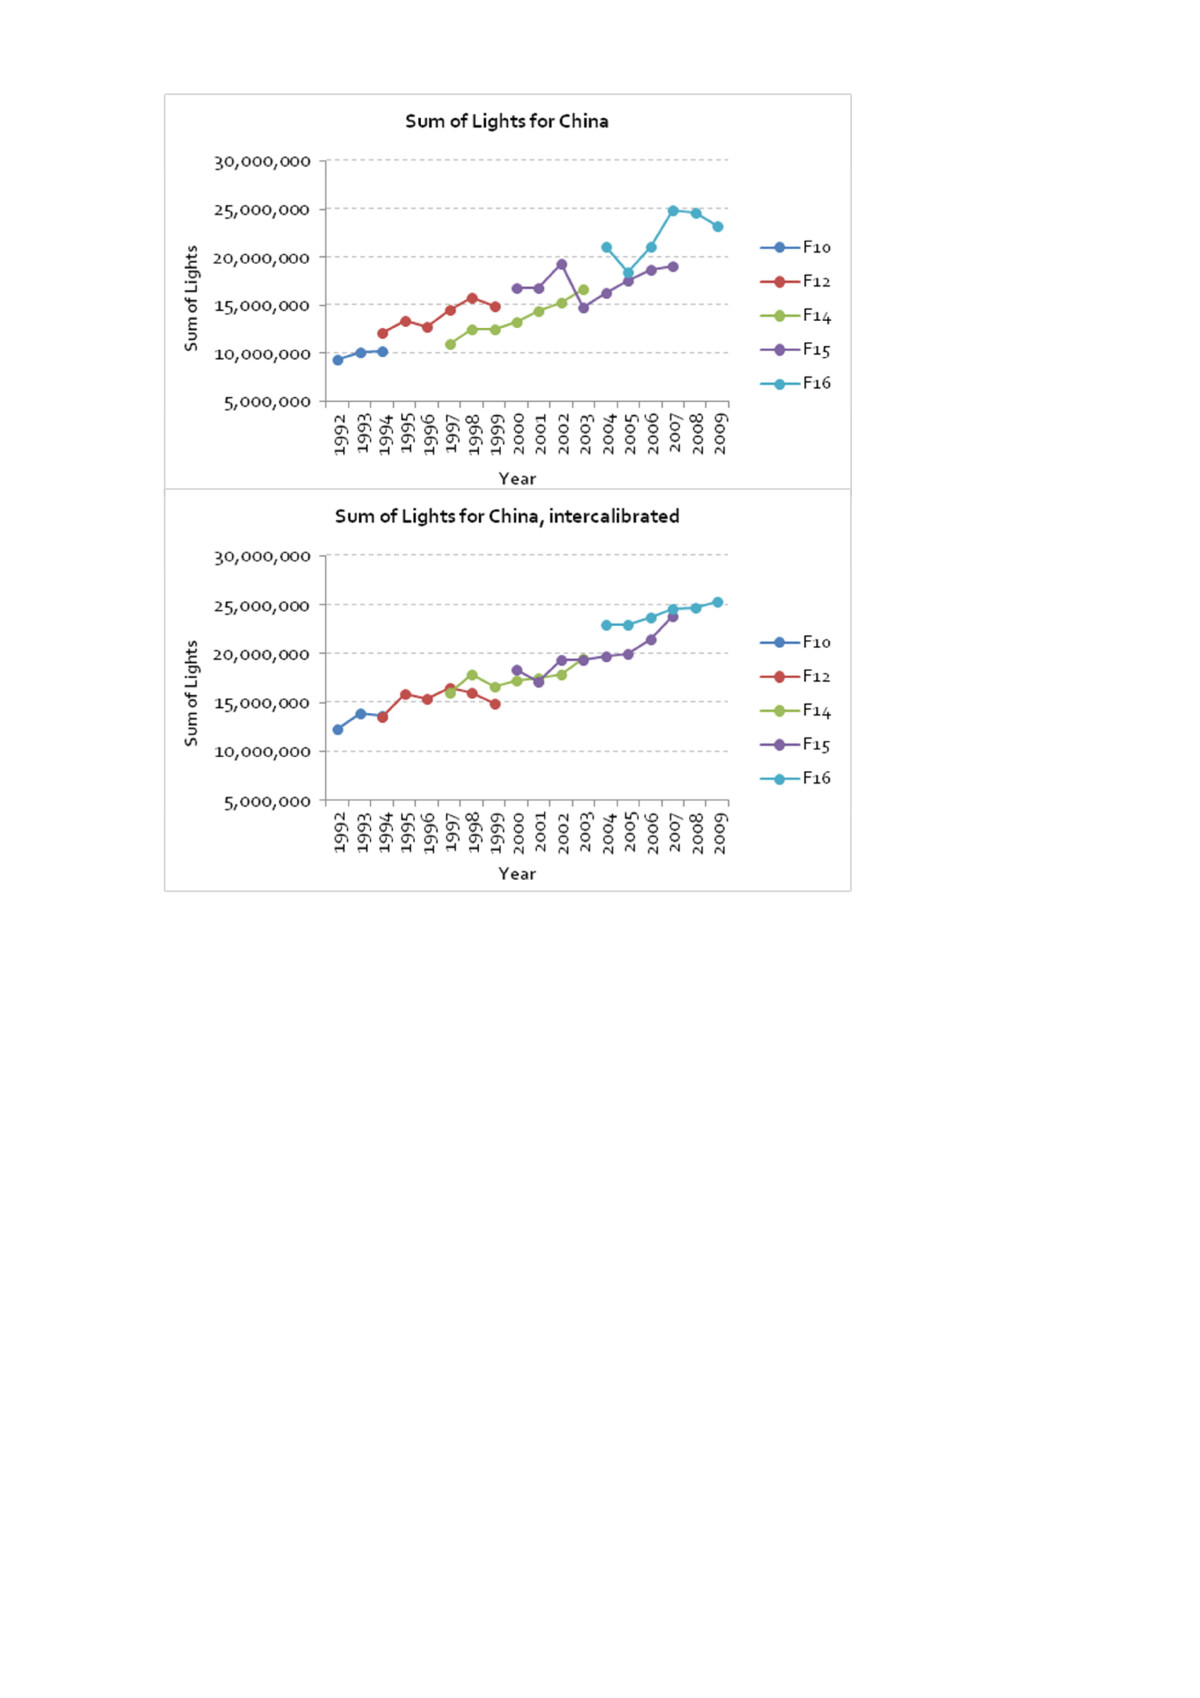 http://static-content.springer.com/image/art%3A10.1140%2Fepjds19/MediaObjects/13688_2013_Article_23_Fig1_HTML.jpg